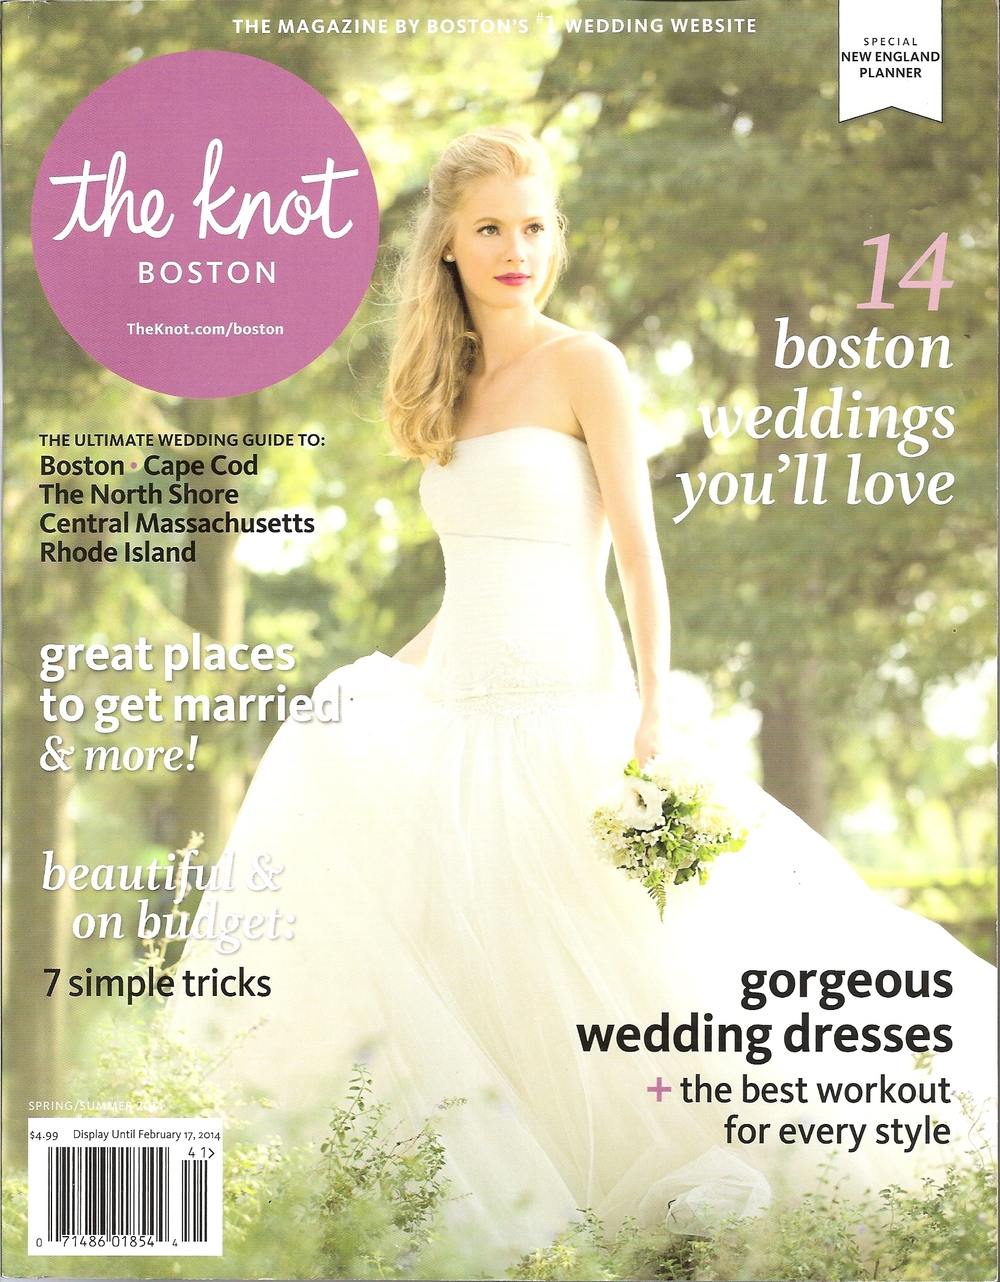 The Knot Press Cover 2014.jpg